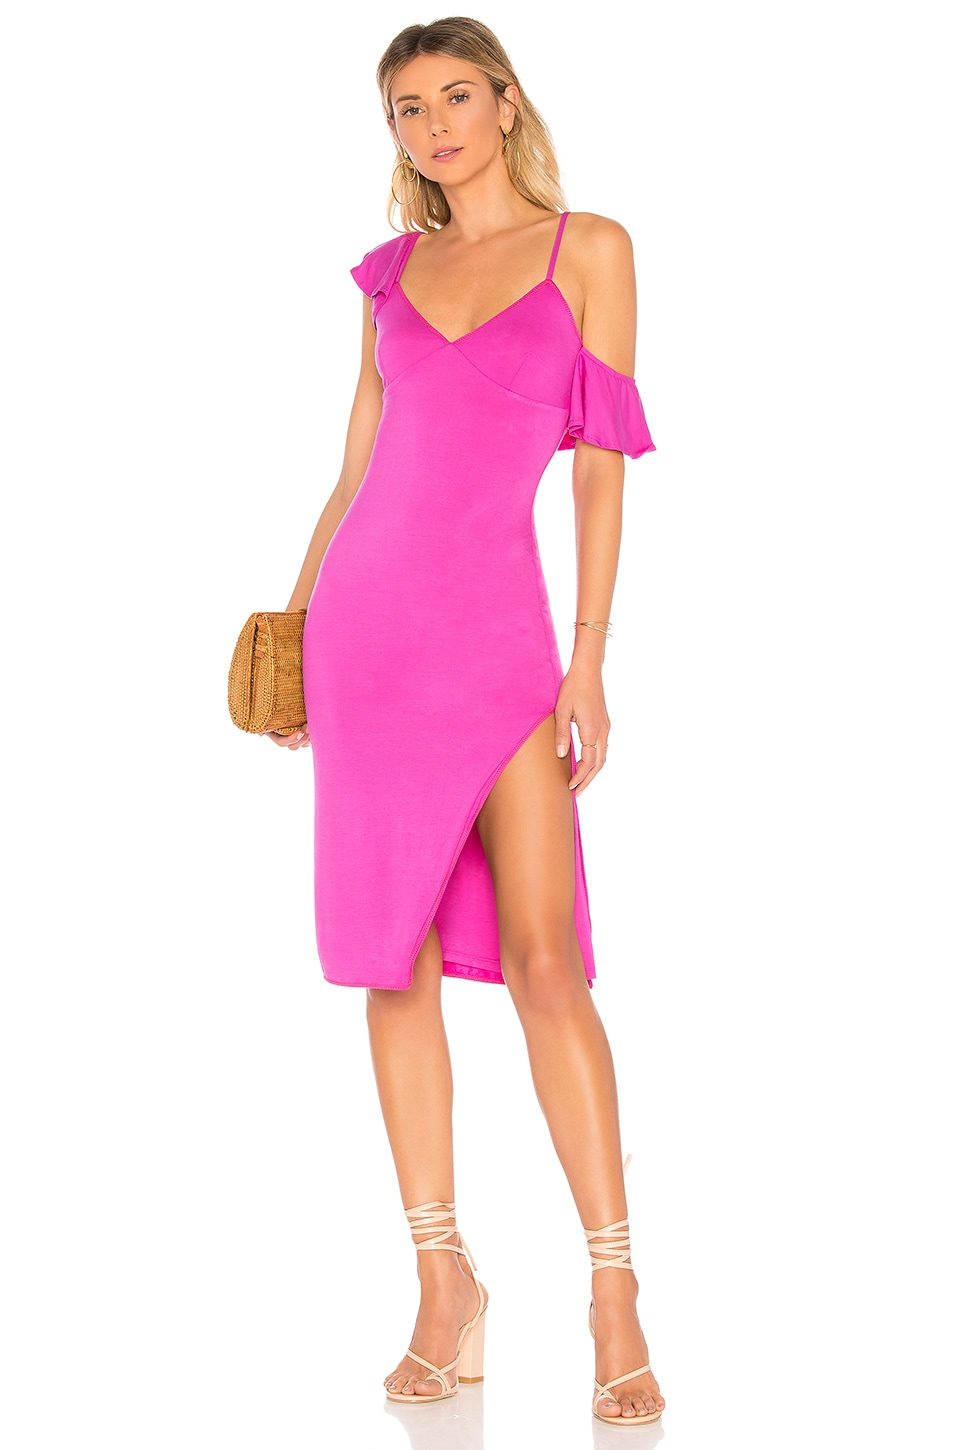 House of Harlow 1960 VESTIDO BODY CLAIRE